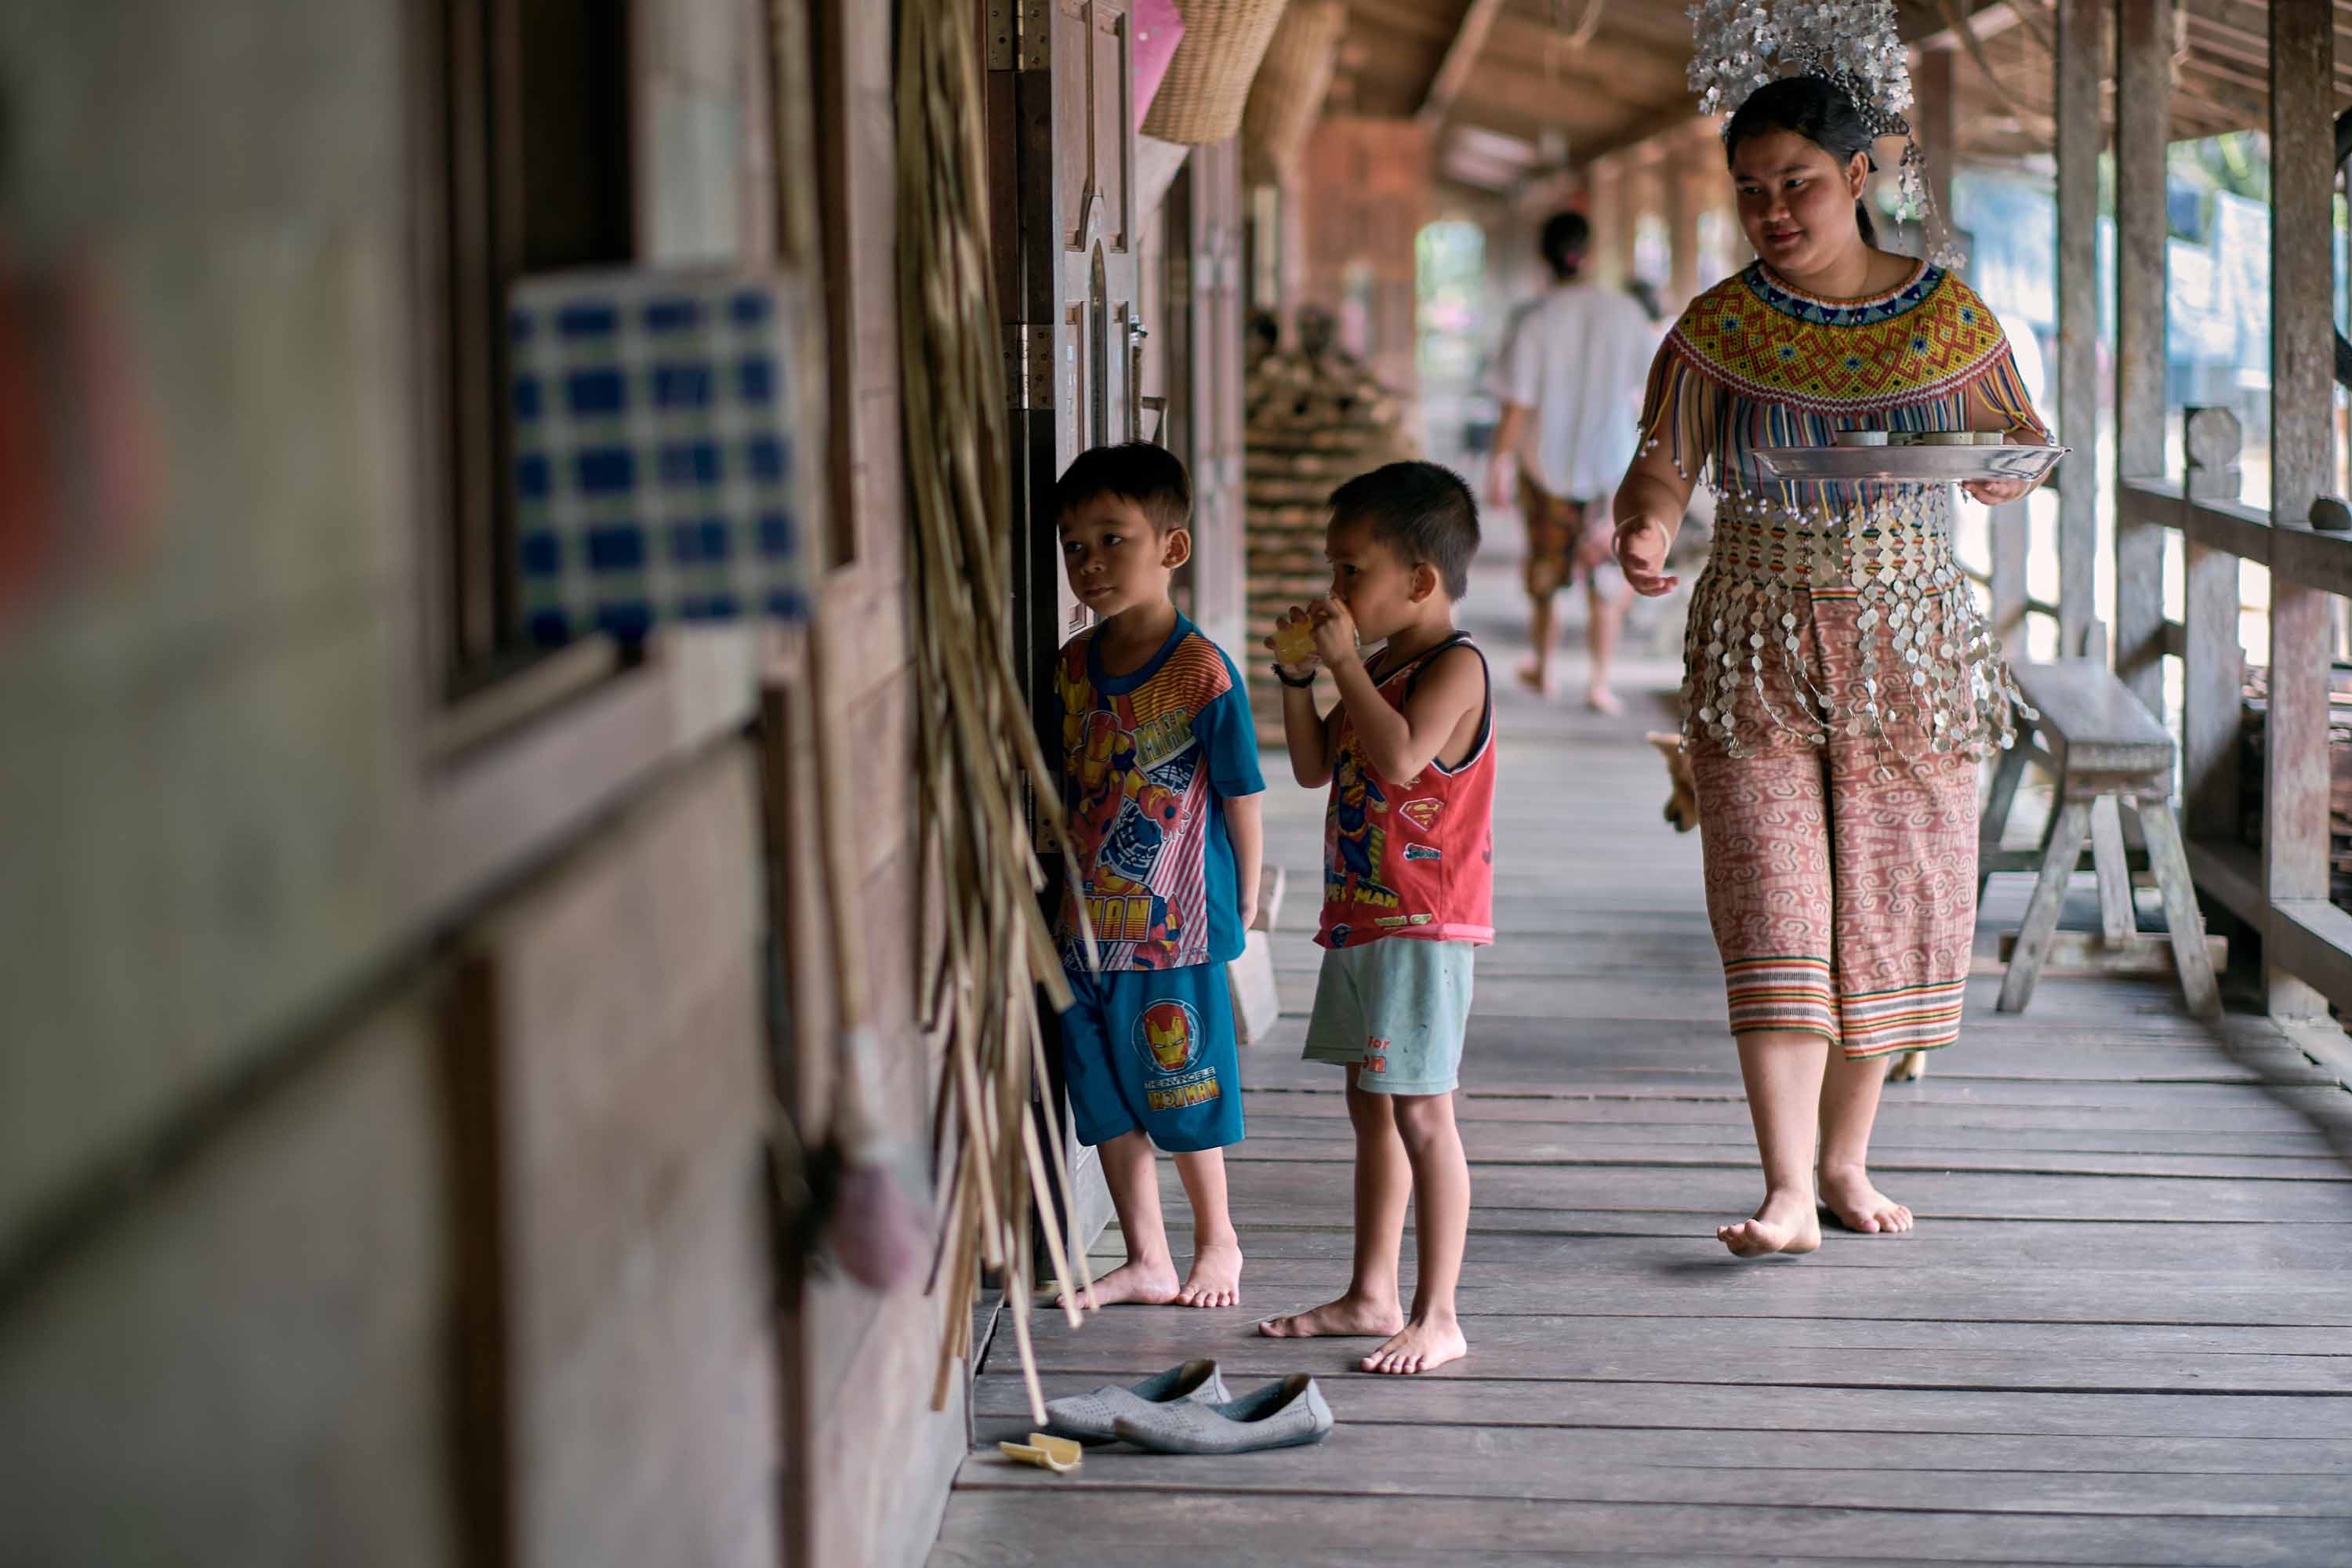 A woman in traditional Dayak Iban clothing holding a tray of drinks walks on the longhouse deck while two children peek into the main room.